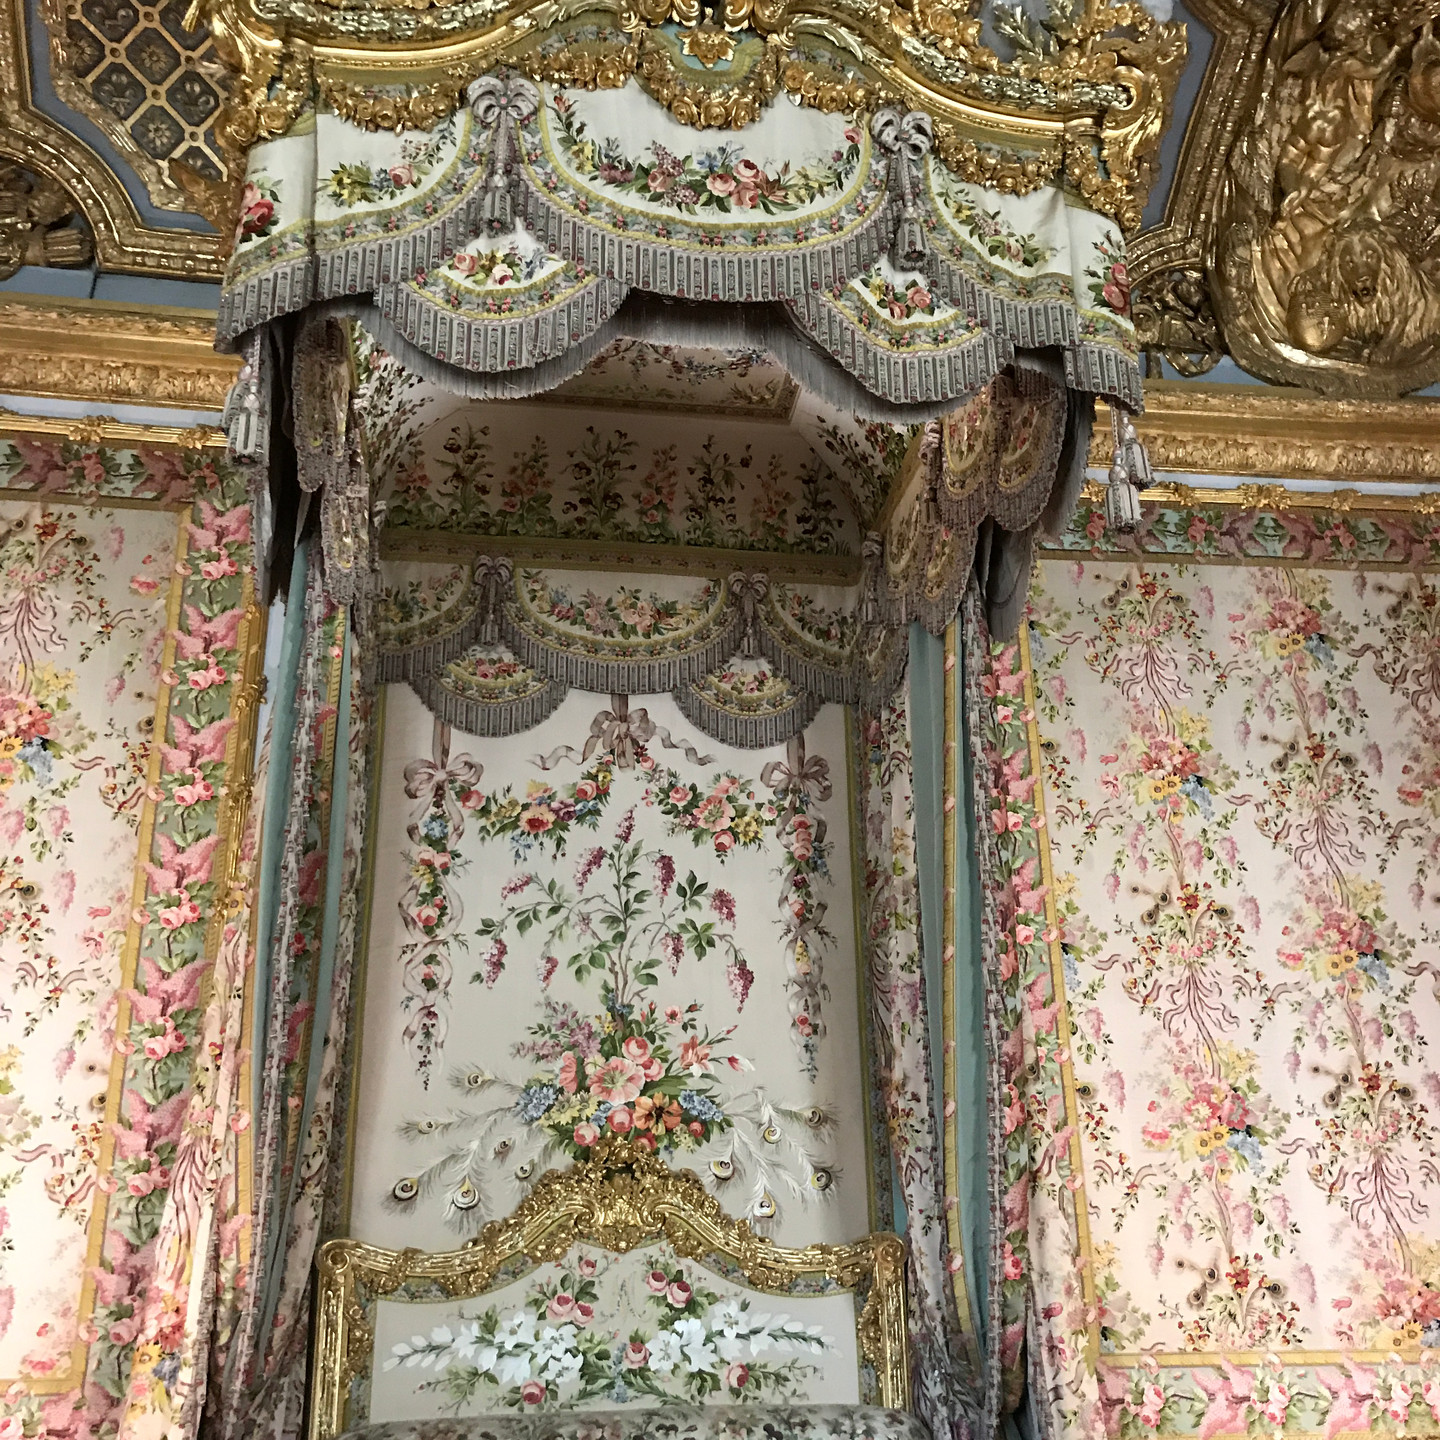 Marie Antoinette's Bedroom with Fringed Canopy Bed at Versailles